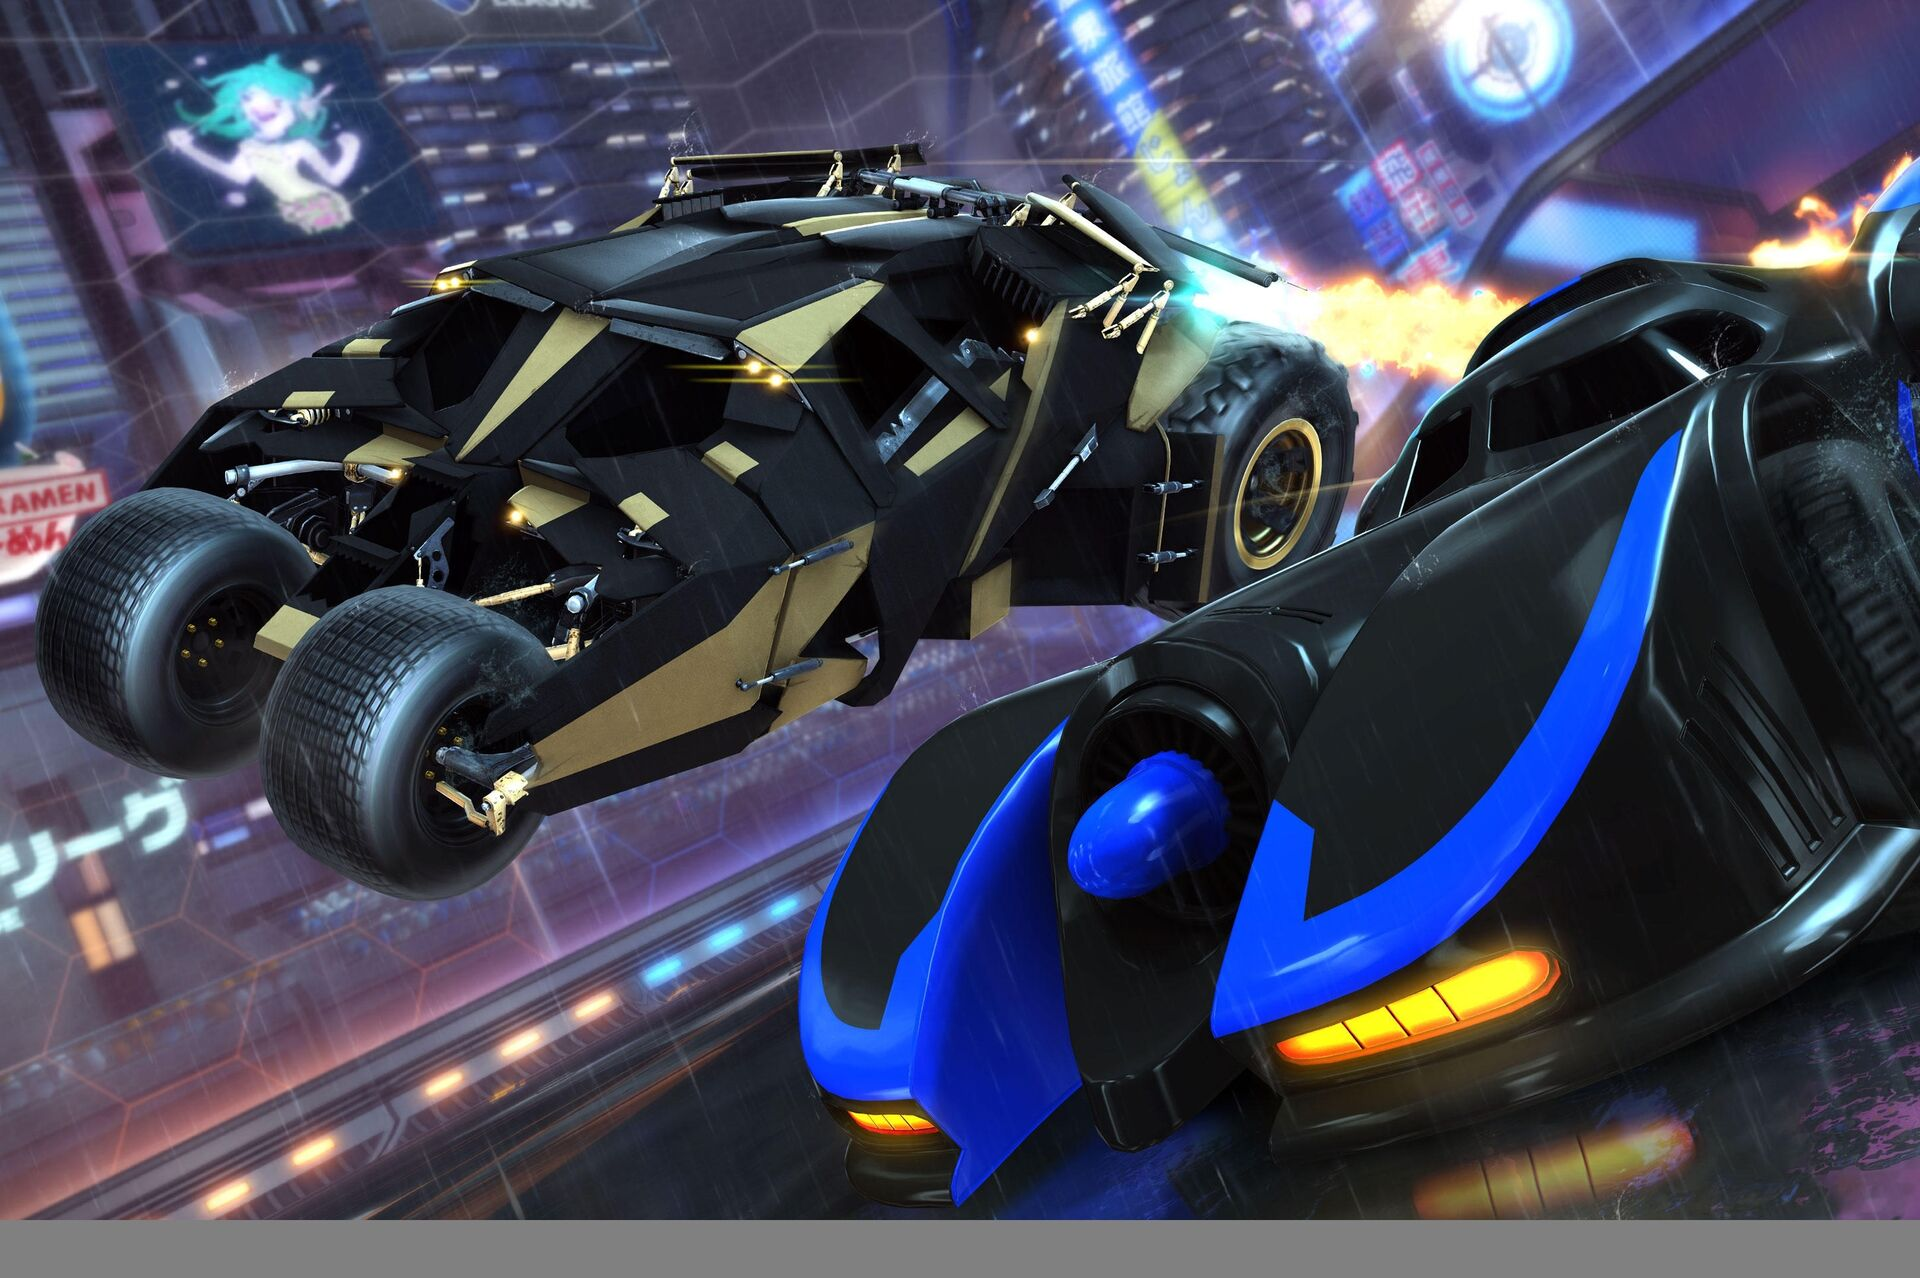 The Batmobile comes to Rocket League next month as part of the DC